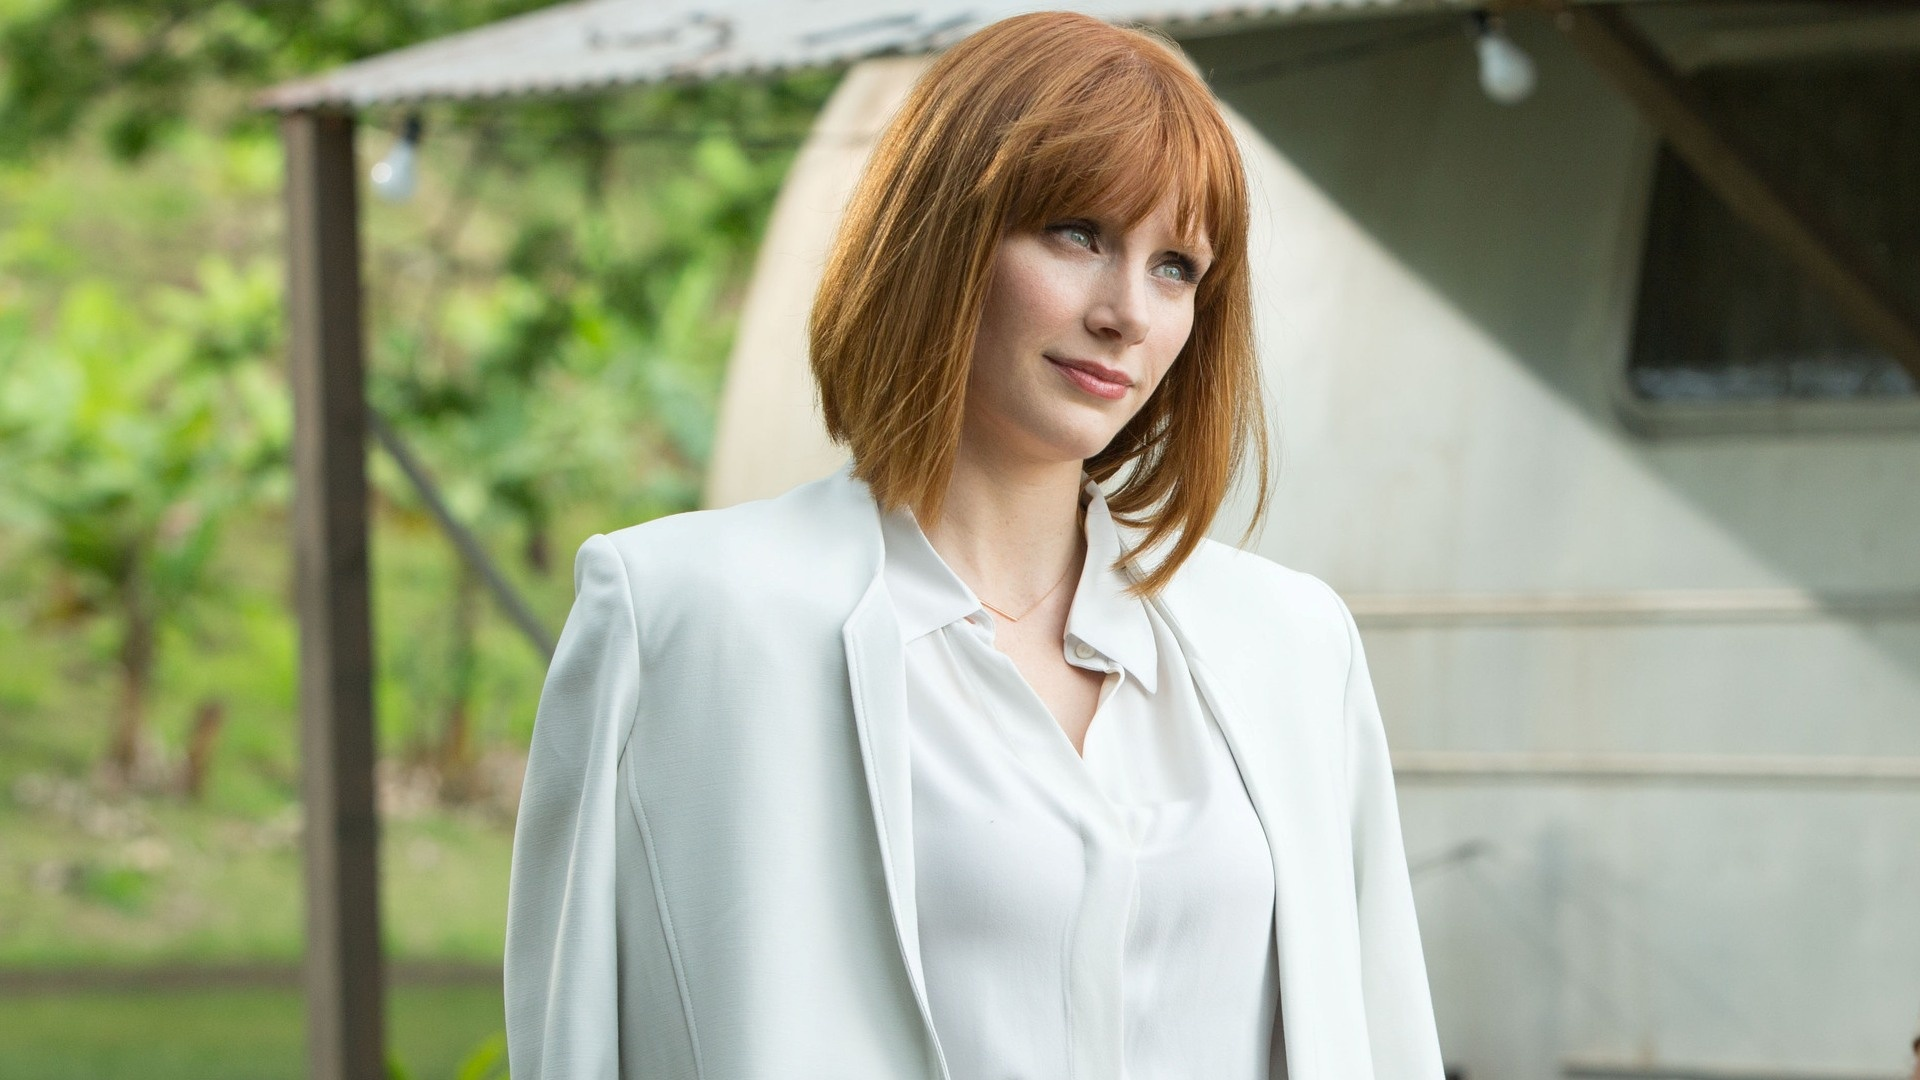 Marilyn monroe computer wallpapers desktop backgrounds 1468x955 -  16 Bryce Dallas Howard In Jurassic World Wallpapers 1920x1080 424040